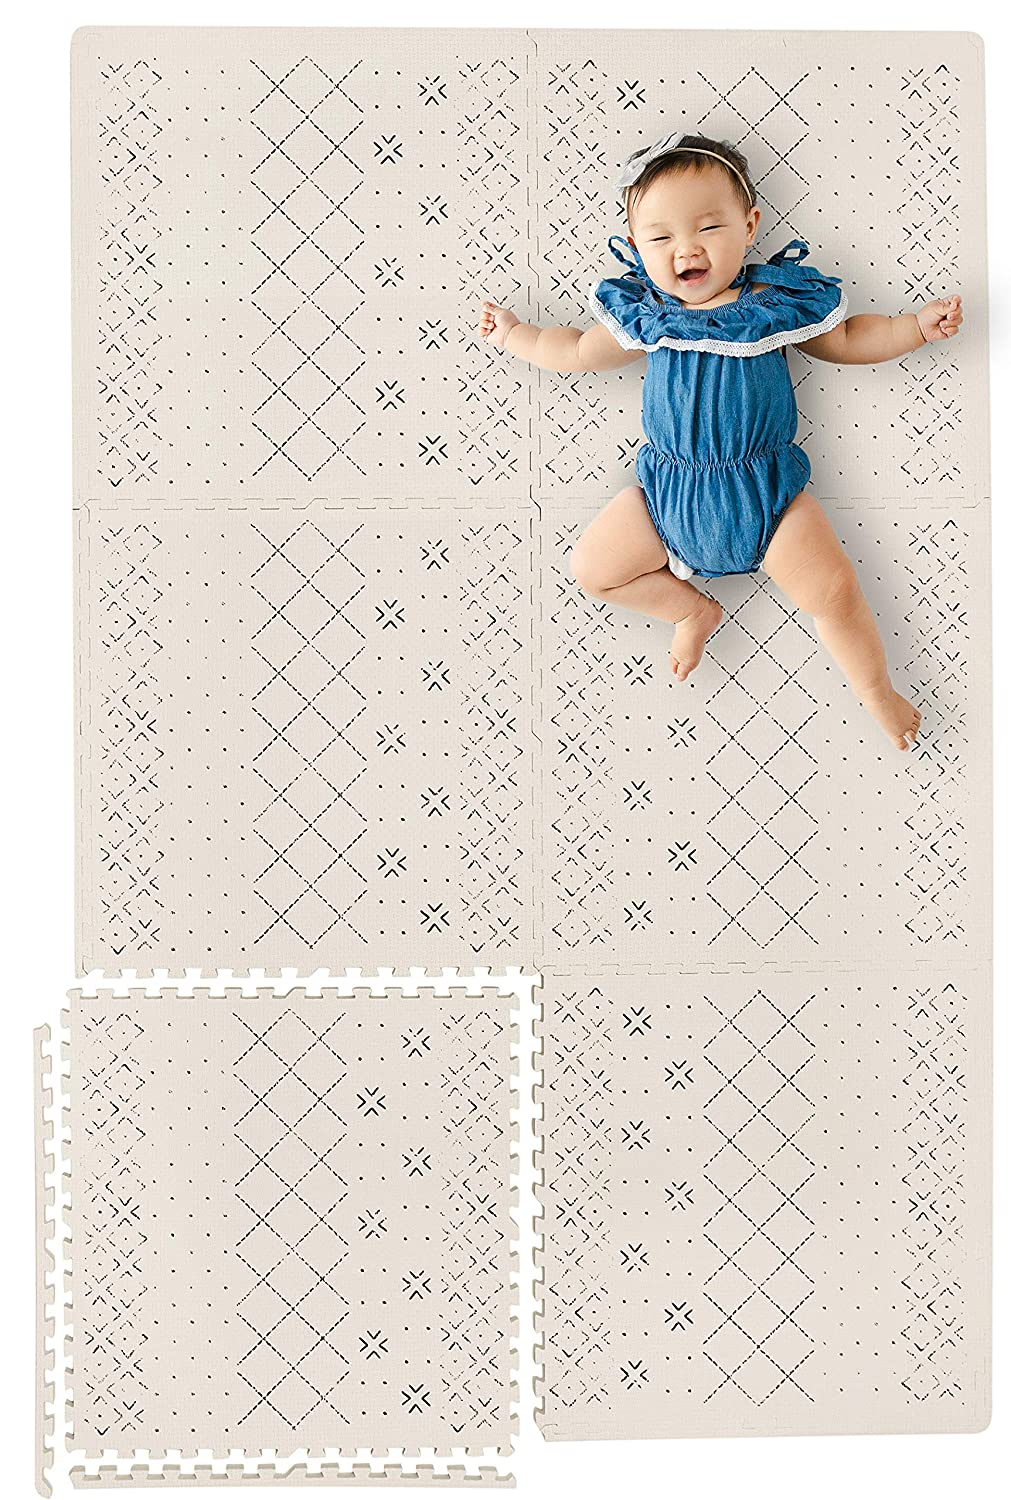 "Stylish Extra Large Baby Play Mat Soft Playmat, Thick Comfortable Foam. Six 24"" x 24"" Floor Tiles with edges for babies. Non-Toxic, No Odors, Spill Resistant, Durable. Yay Mats Puzzle Mat 4 Tummy Time"